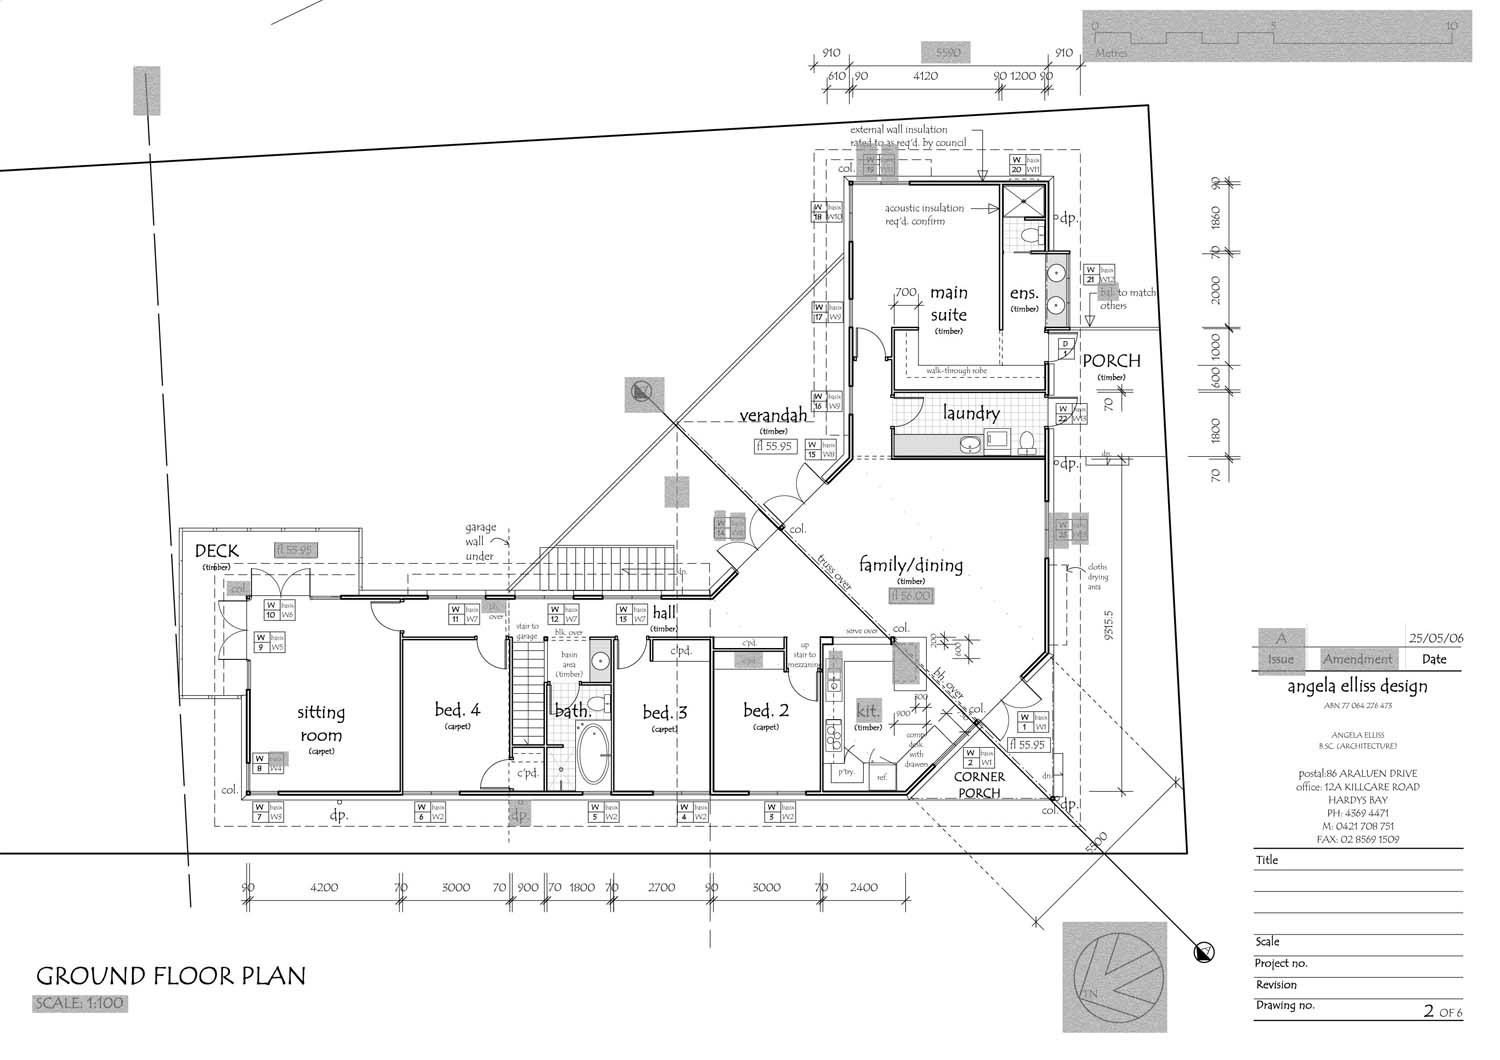 House Plan Drawing How To Read House Construction Plans